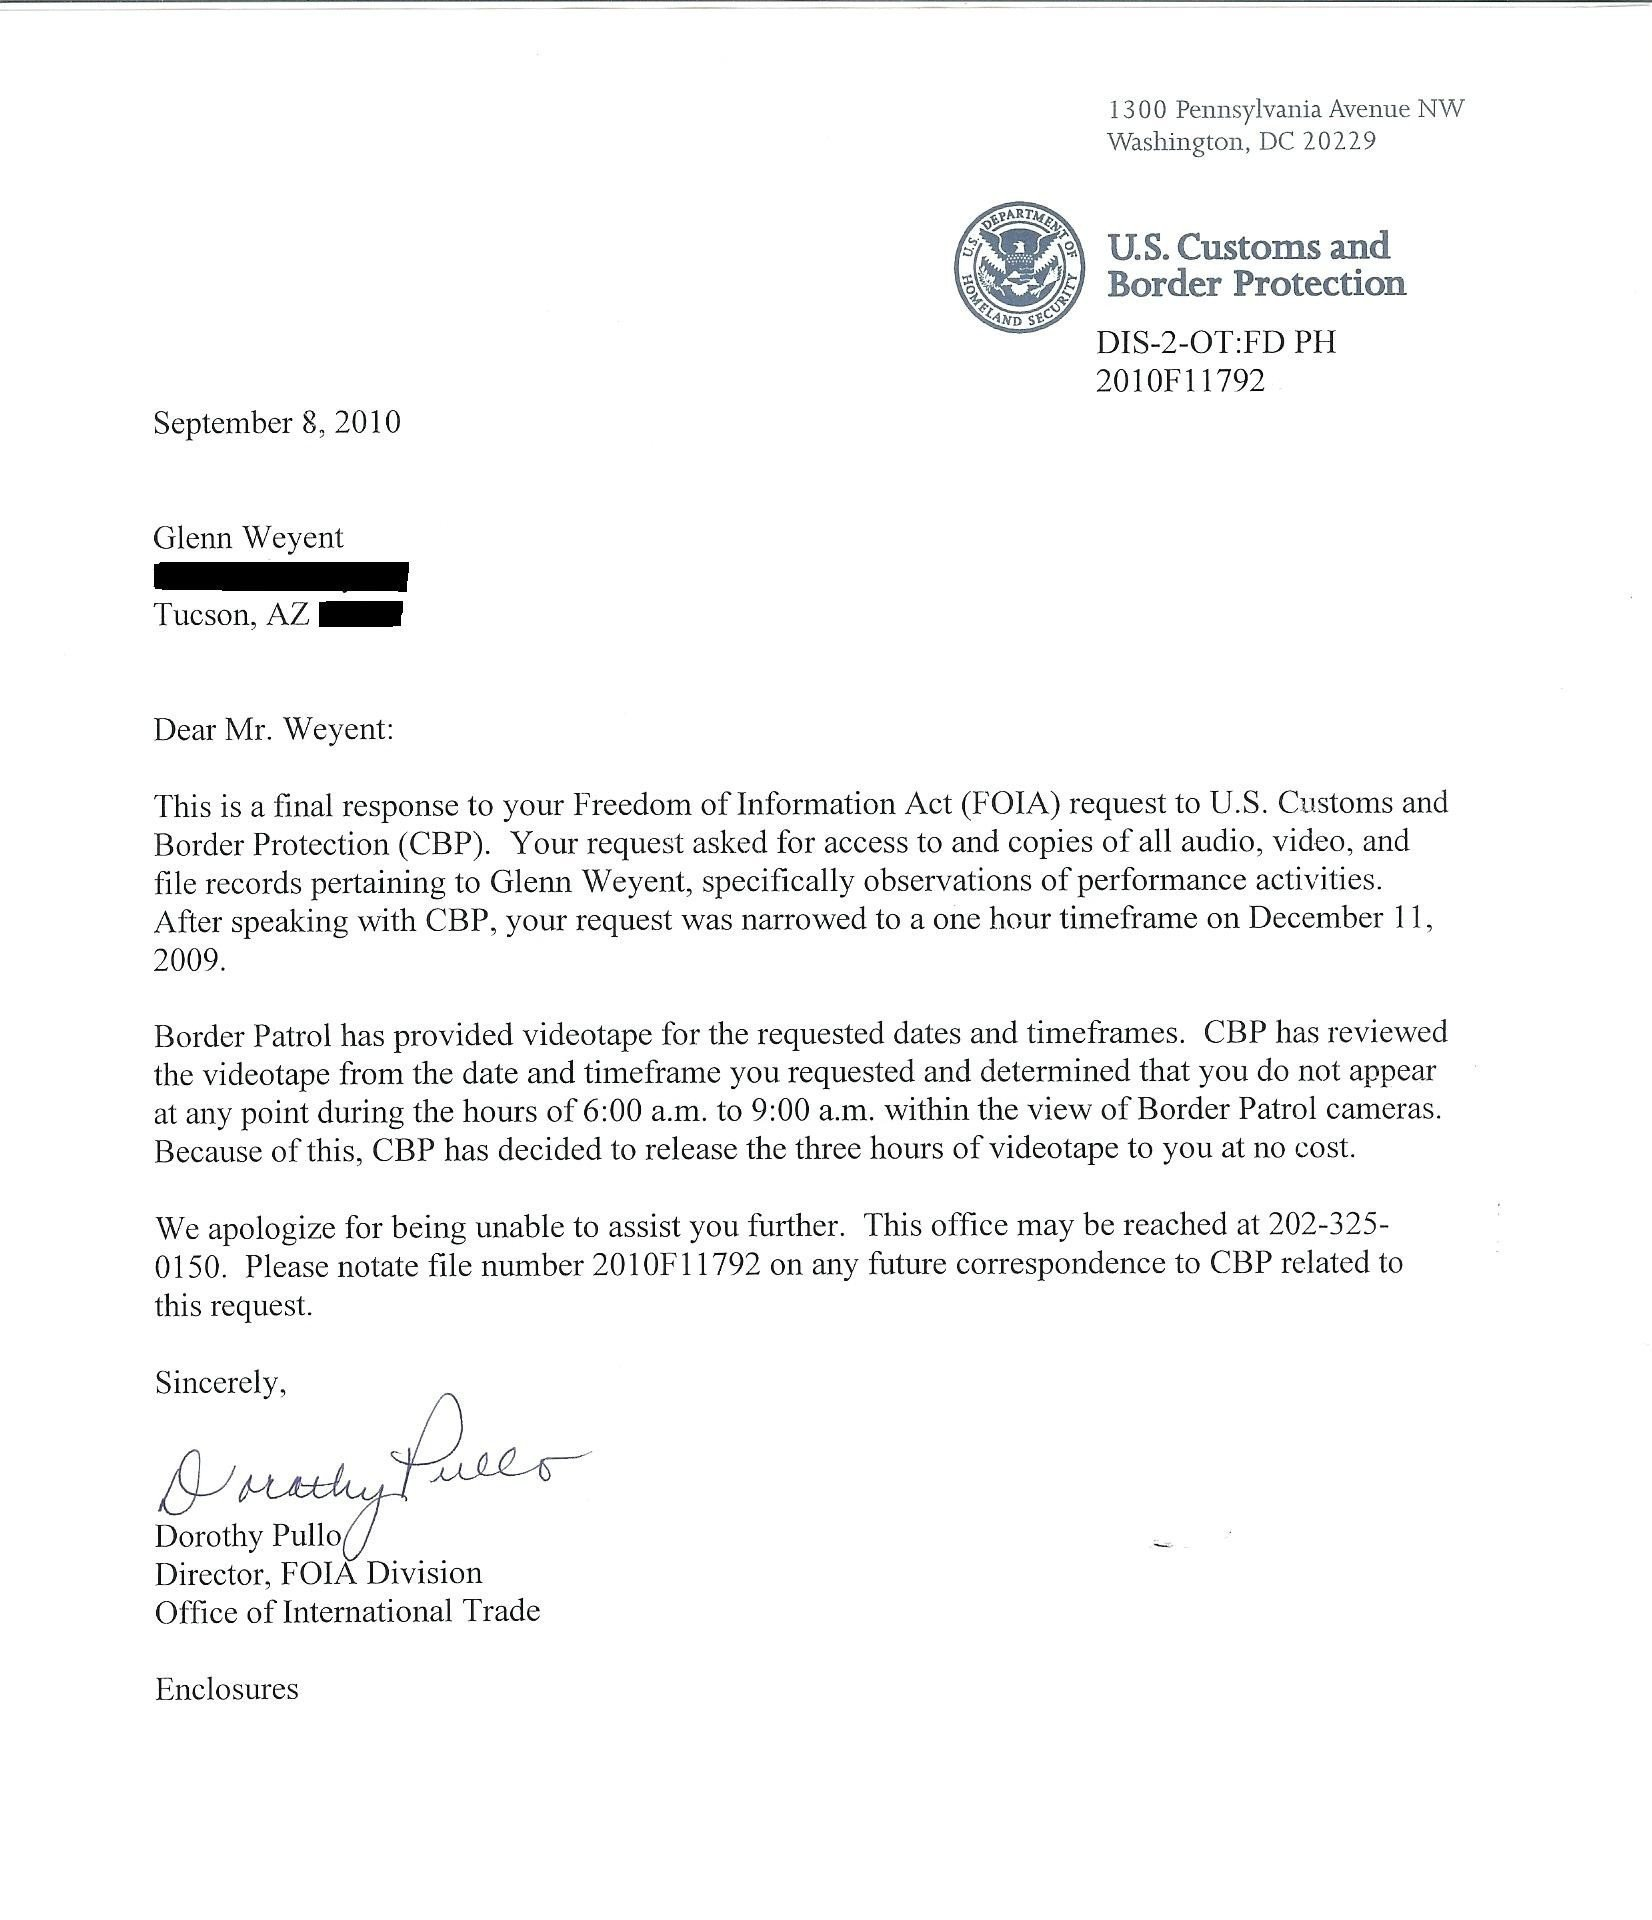 Immigration Recommendation Letter Sample New Immigration Re Mendation Letter for A Family Member